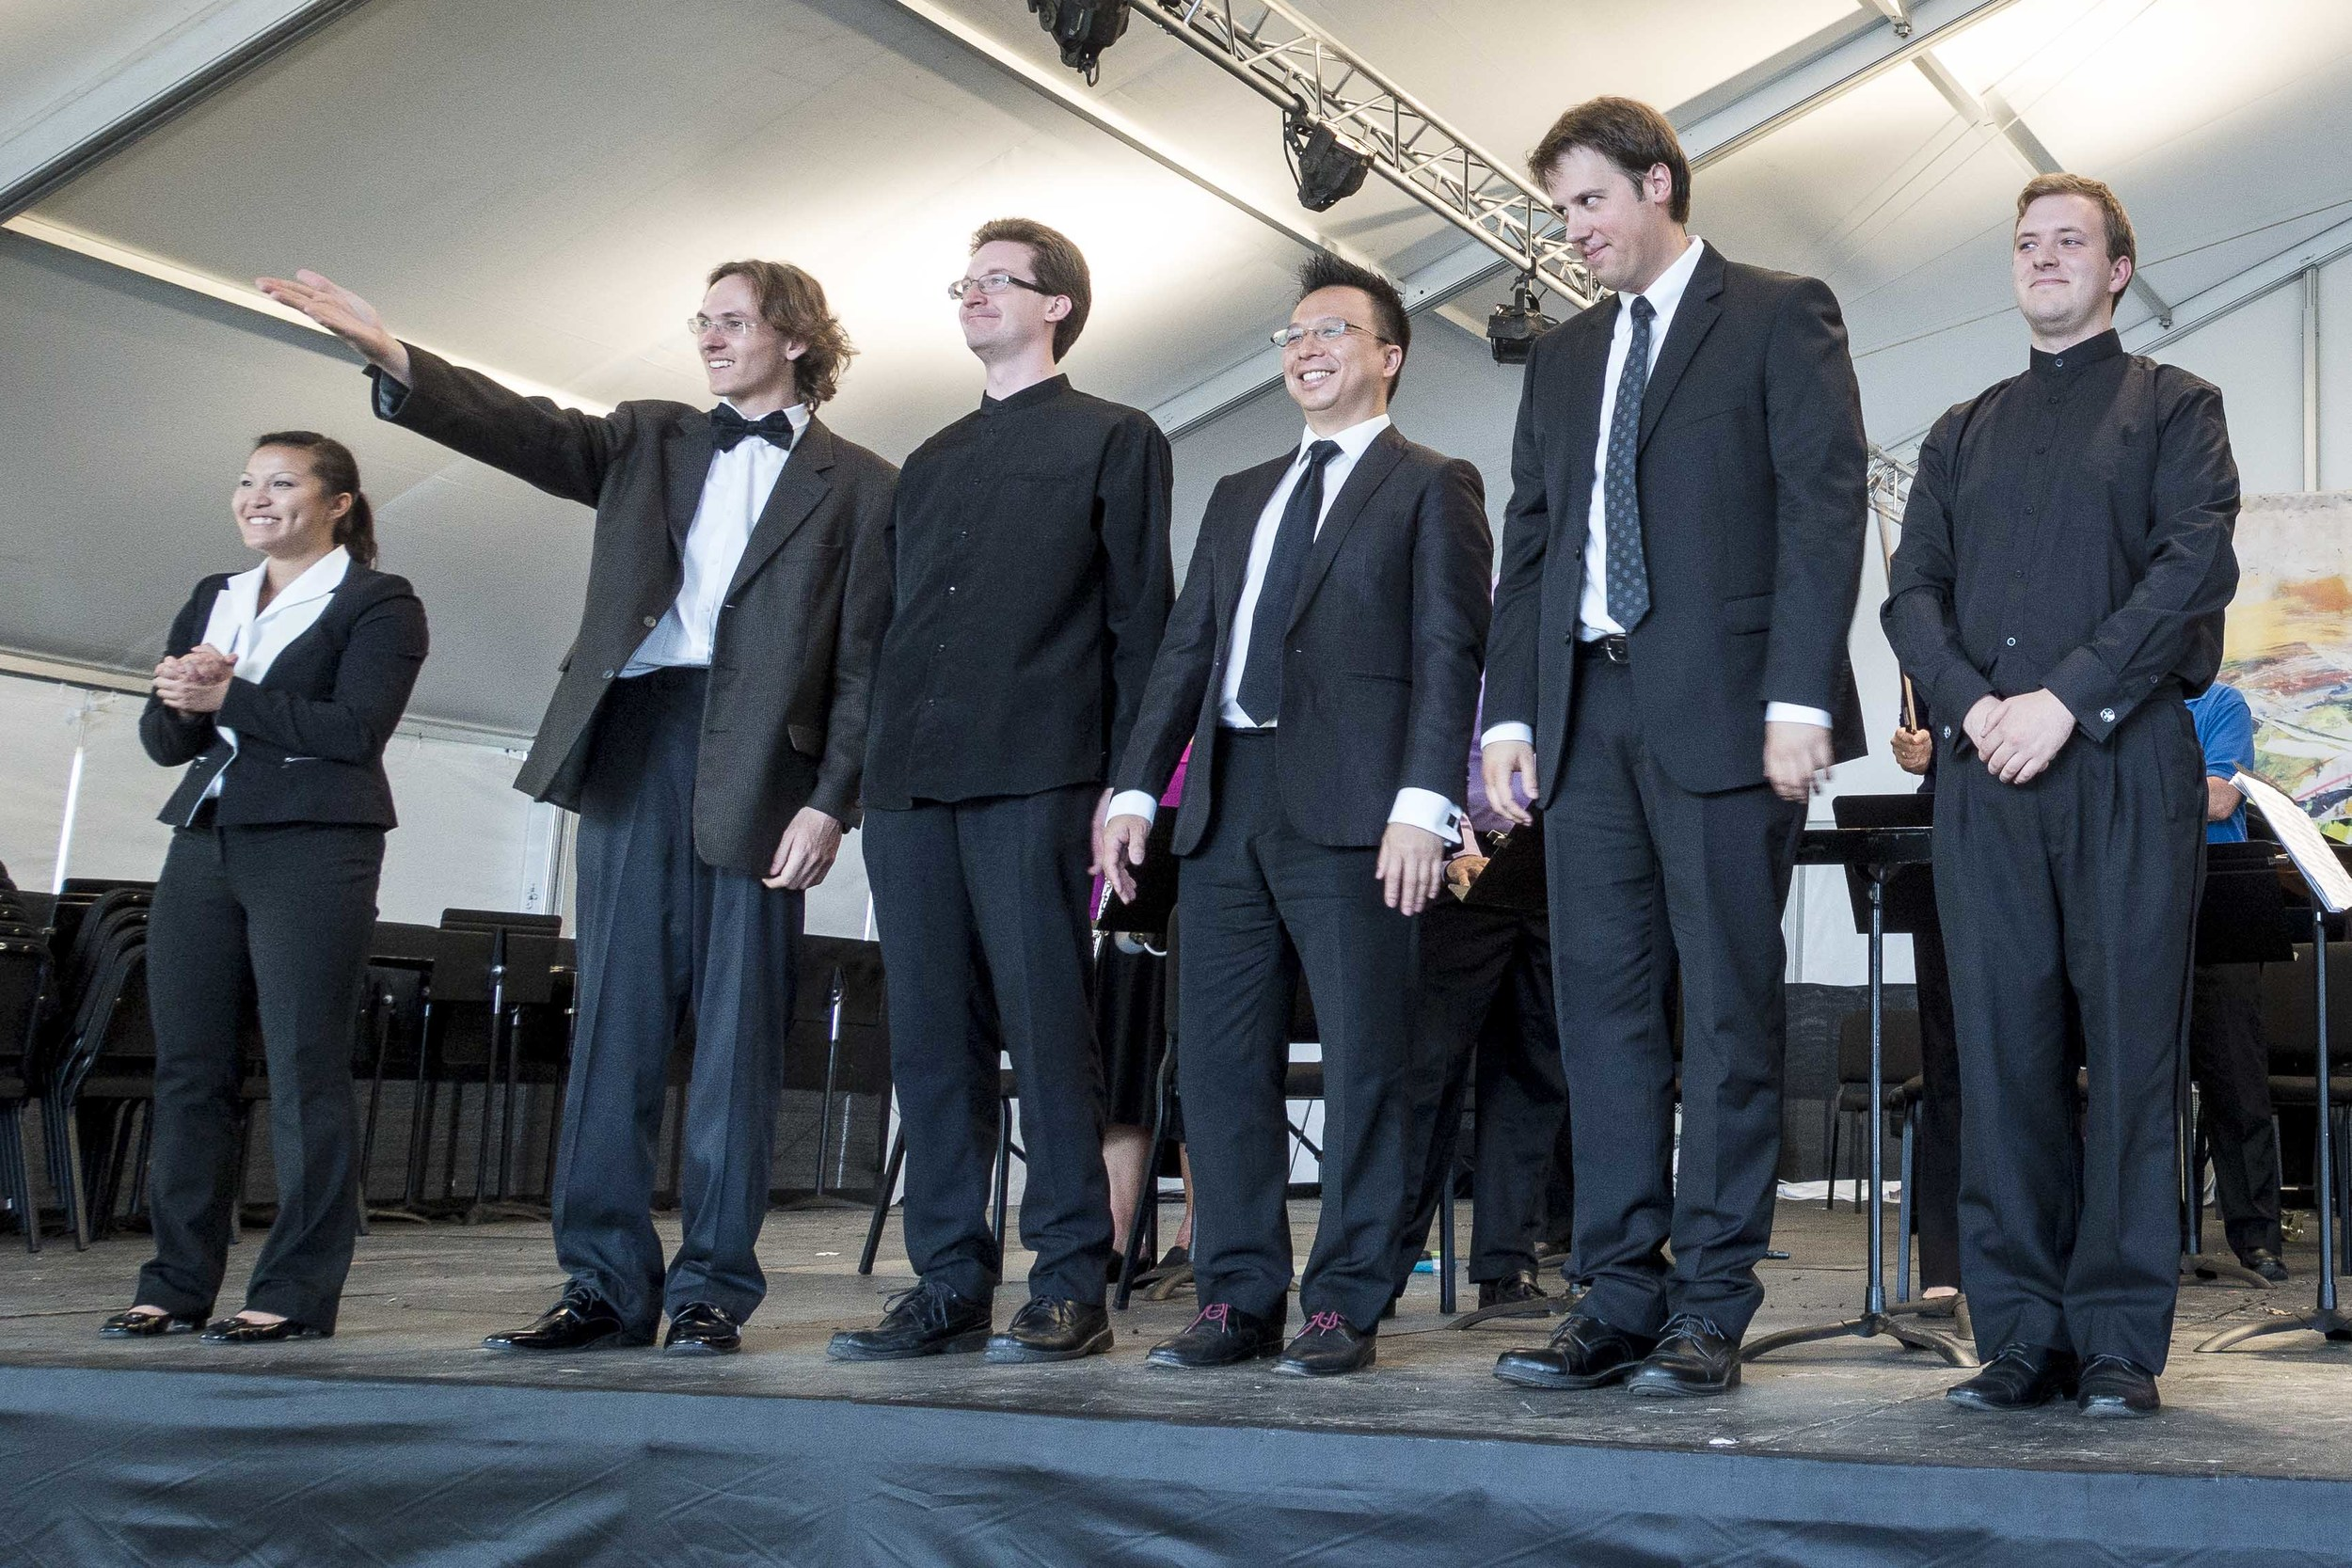 The six conductors of the inaugural Conductors' Summit take a bow and acknowledge their master instructor, Victor Yampolsky. From the left: Deanna Tham, Fedor Ouspensky, Dan Whisler, Mark Tse, Grant Harville, and Matthew Abernathy. Photo credit:Lewis Dunn